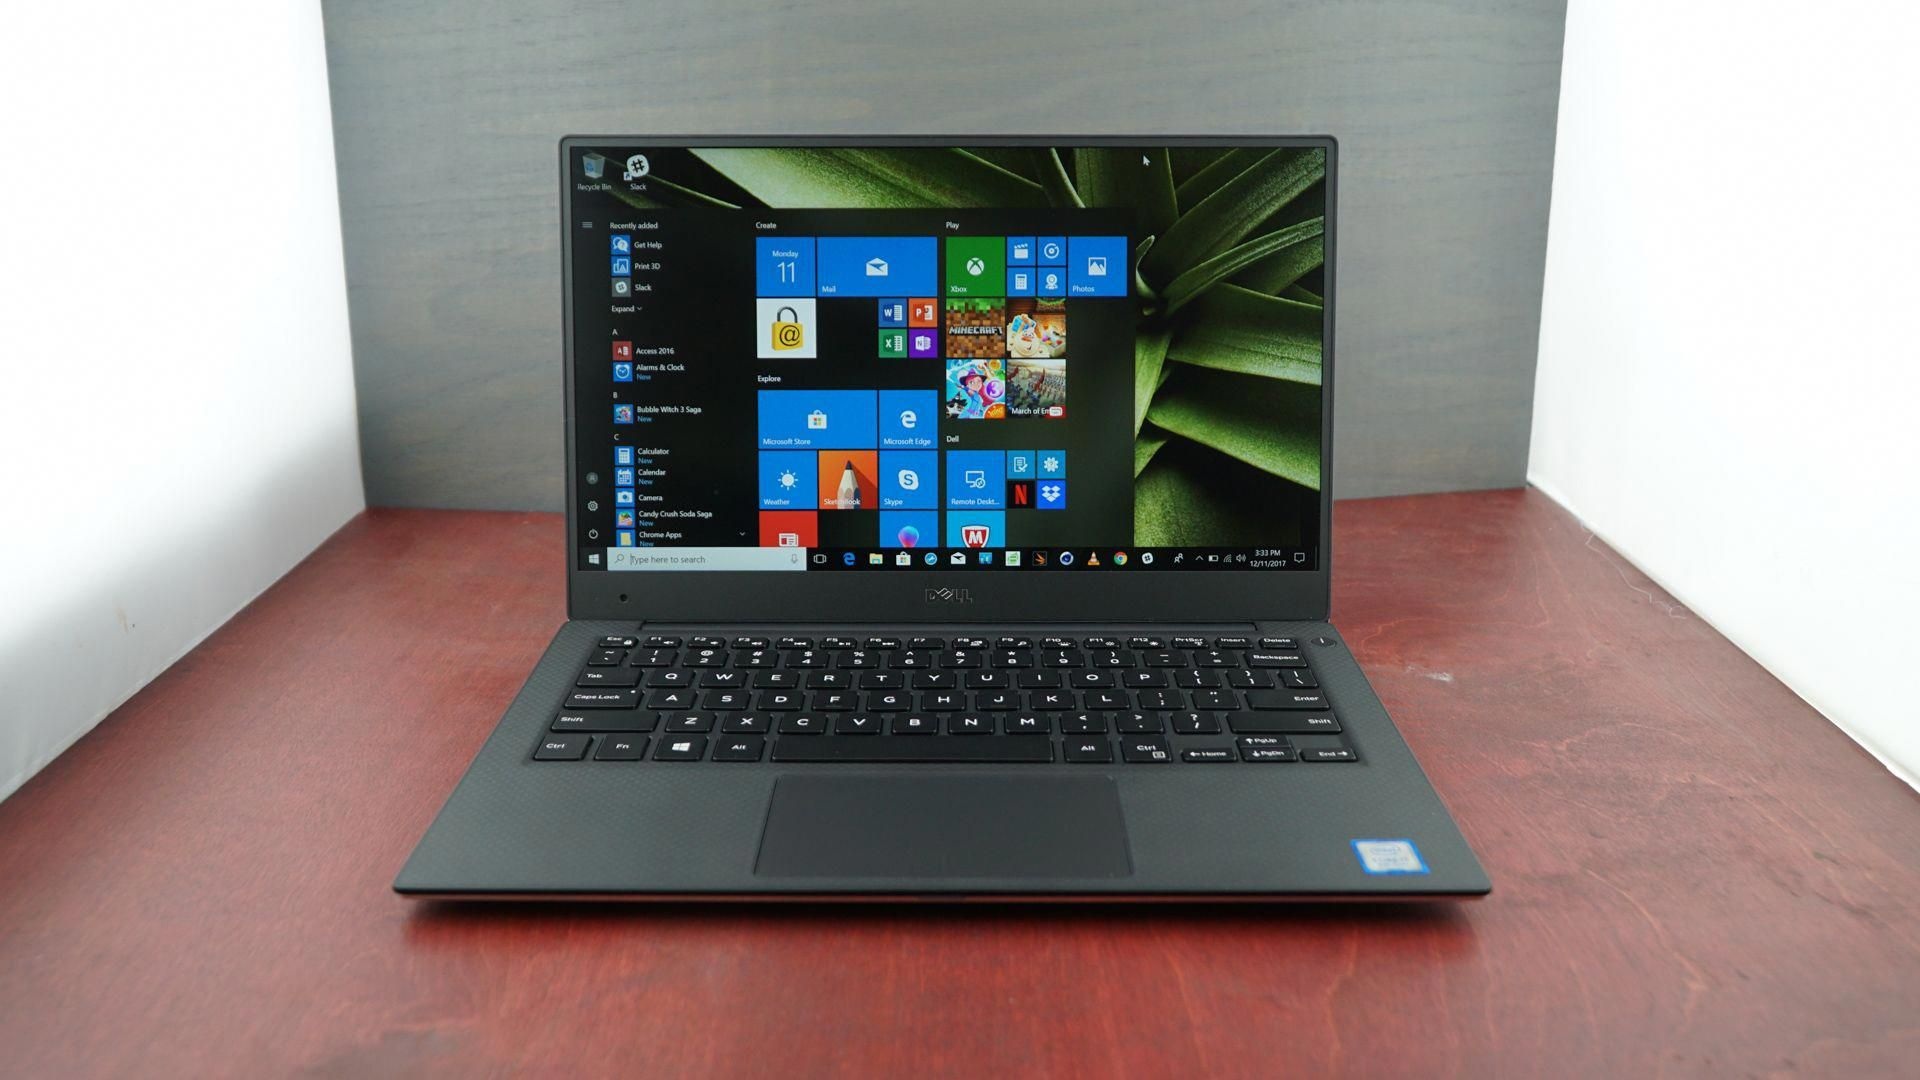 The Best 13 Inch Laptop 2020 The Top 13 Inch Laptops We Ve Reviewed Laptop Laptop Screen Repair Laptops For Sale